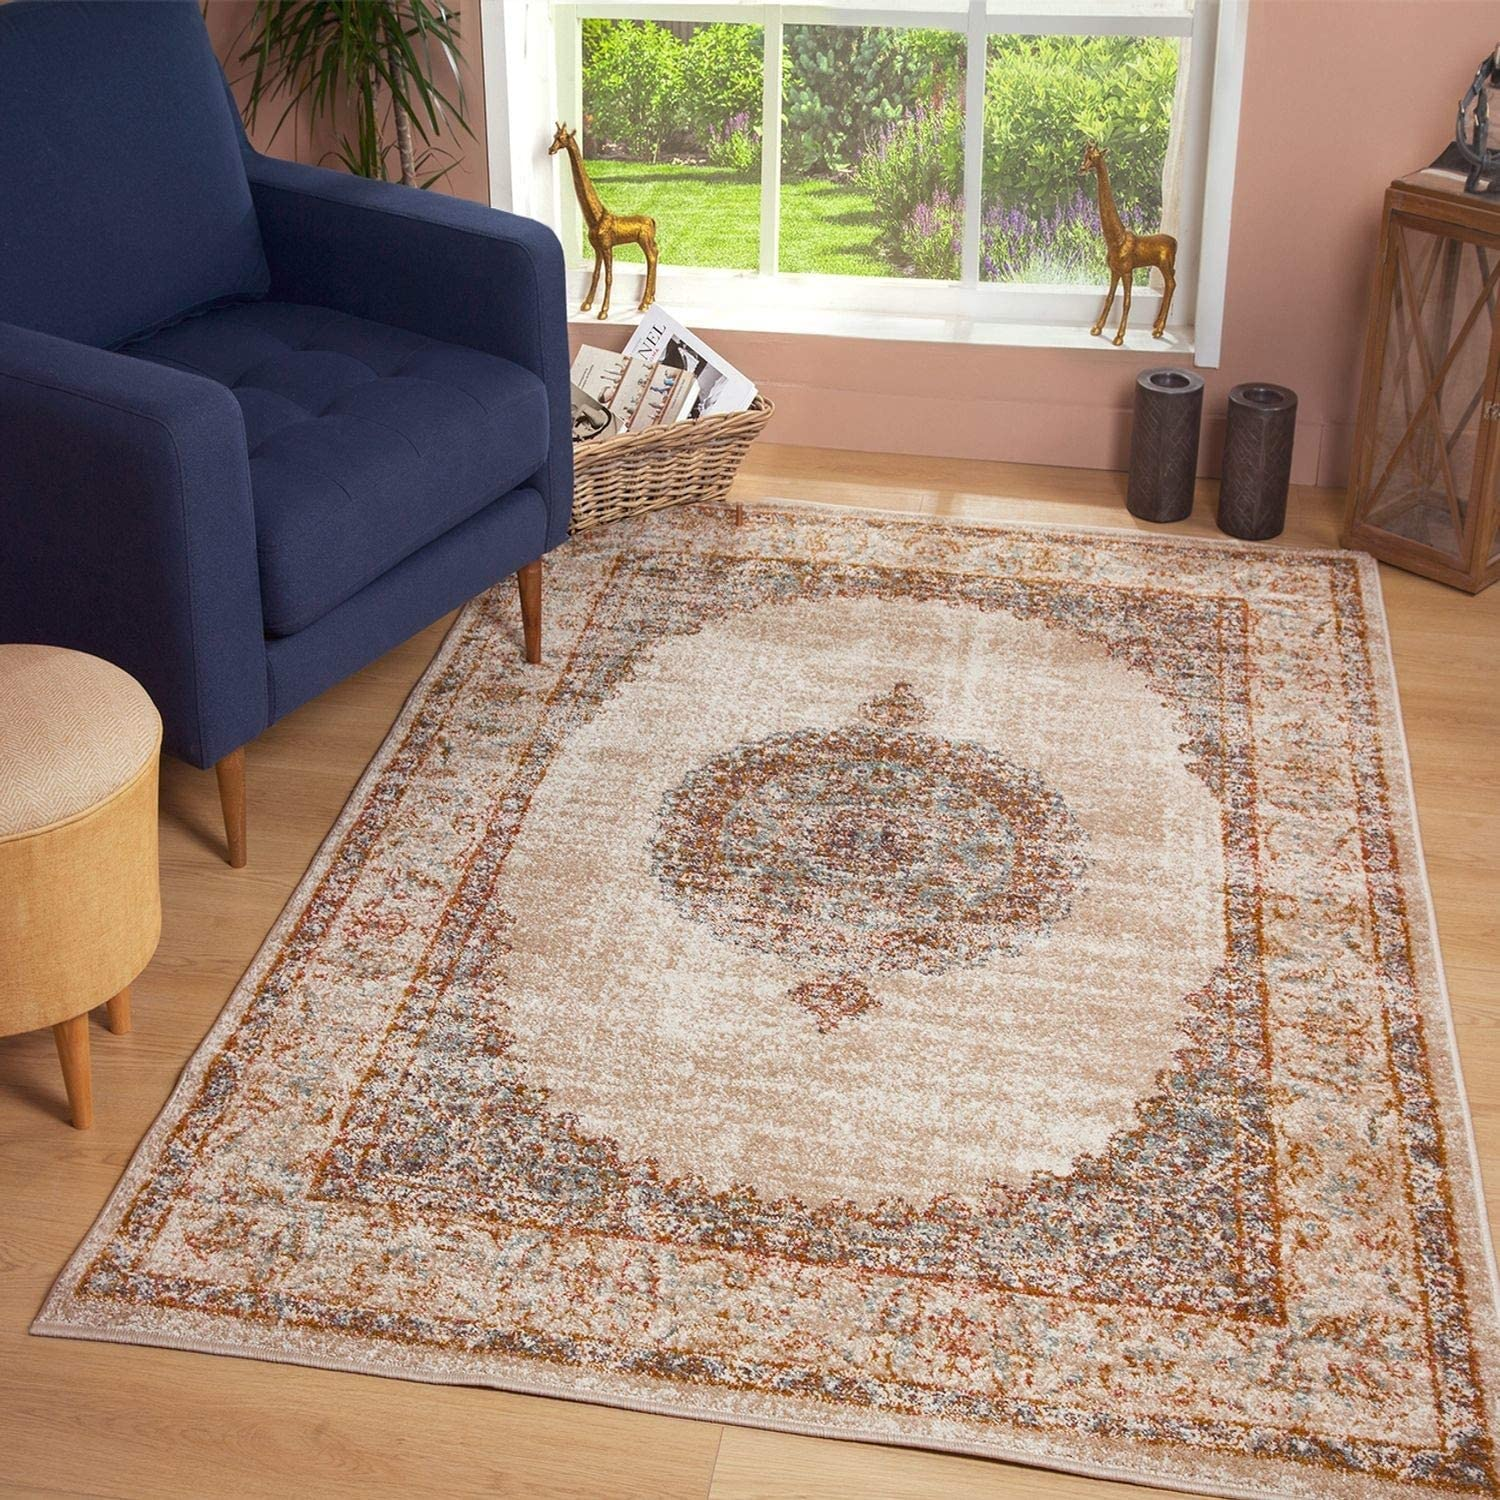 JV Home Vintage Collection Distressed Bohemian Chic Area Rug for Entryway 2 x 3 Grey//Blue